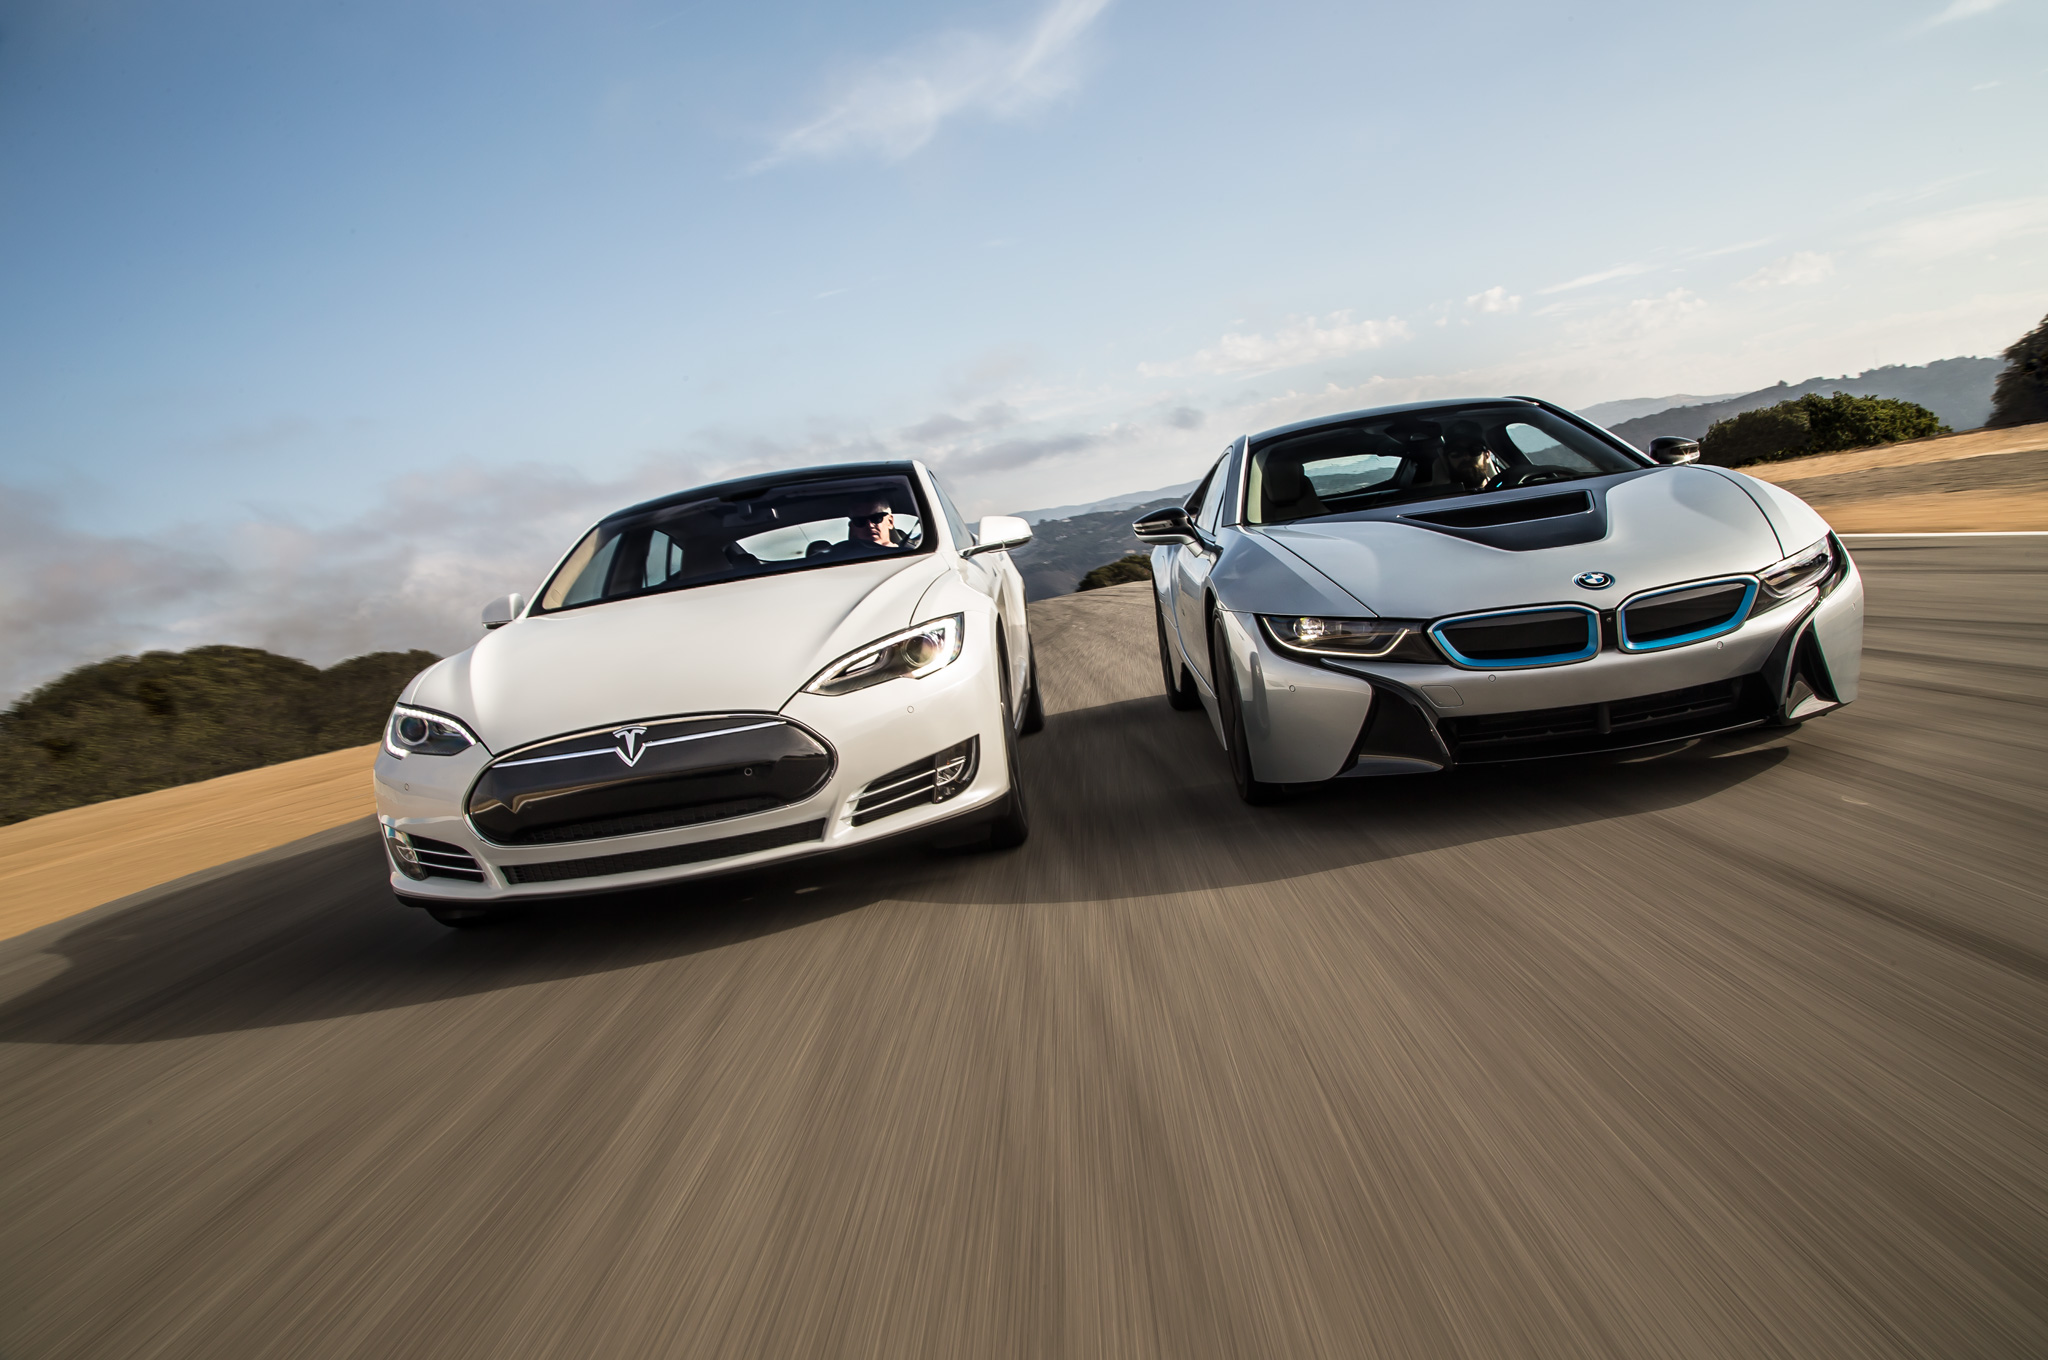 Video: Real Life Scalextric, The Battle Of The Electric Cars! BMW I8 Vs  Tesla P85D